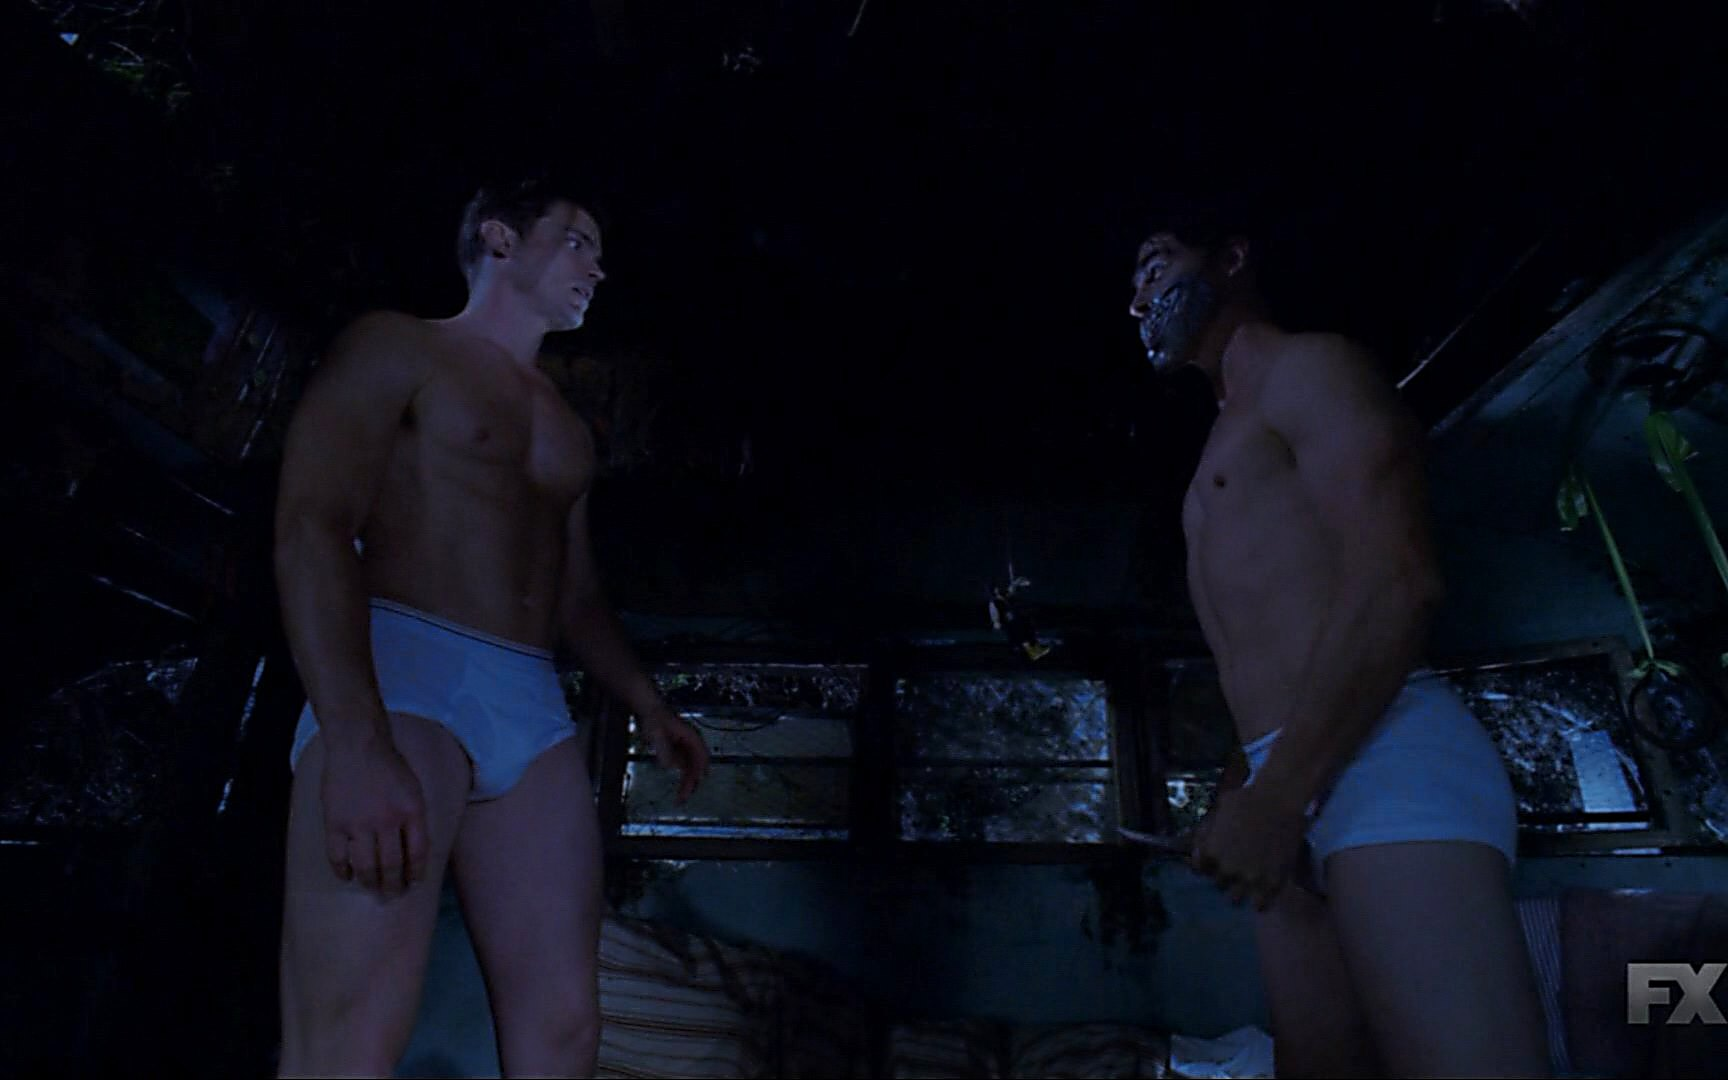 Finn Wittrock sexy shirtless scene November 6, 2014, 2am